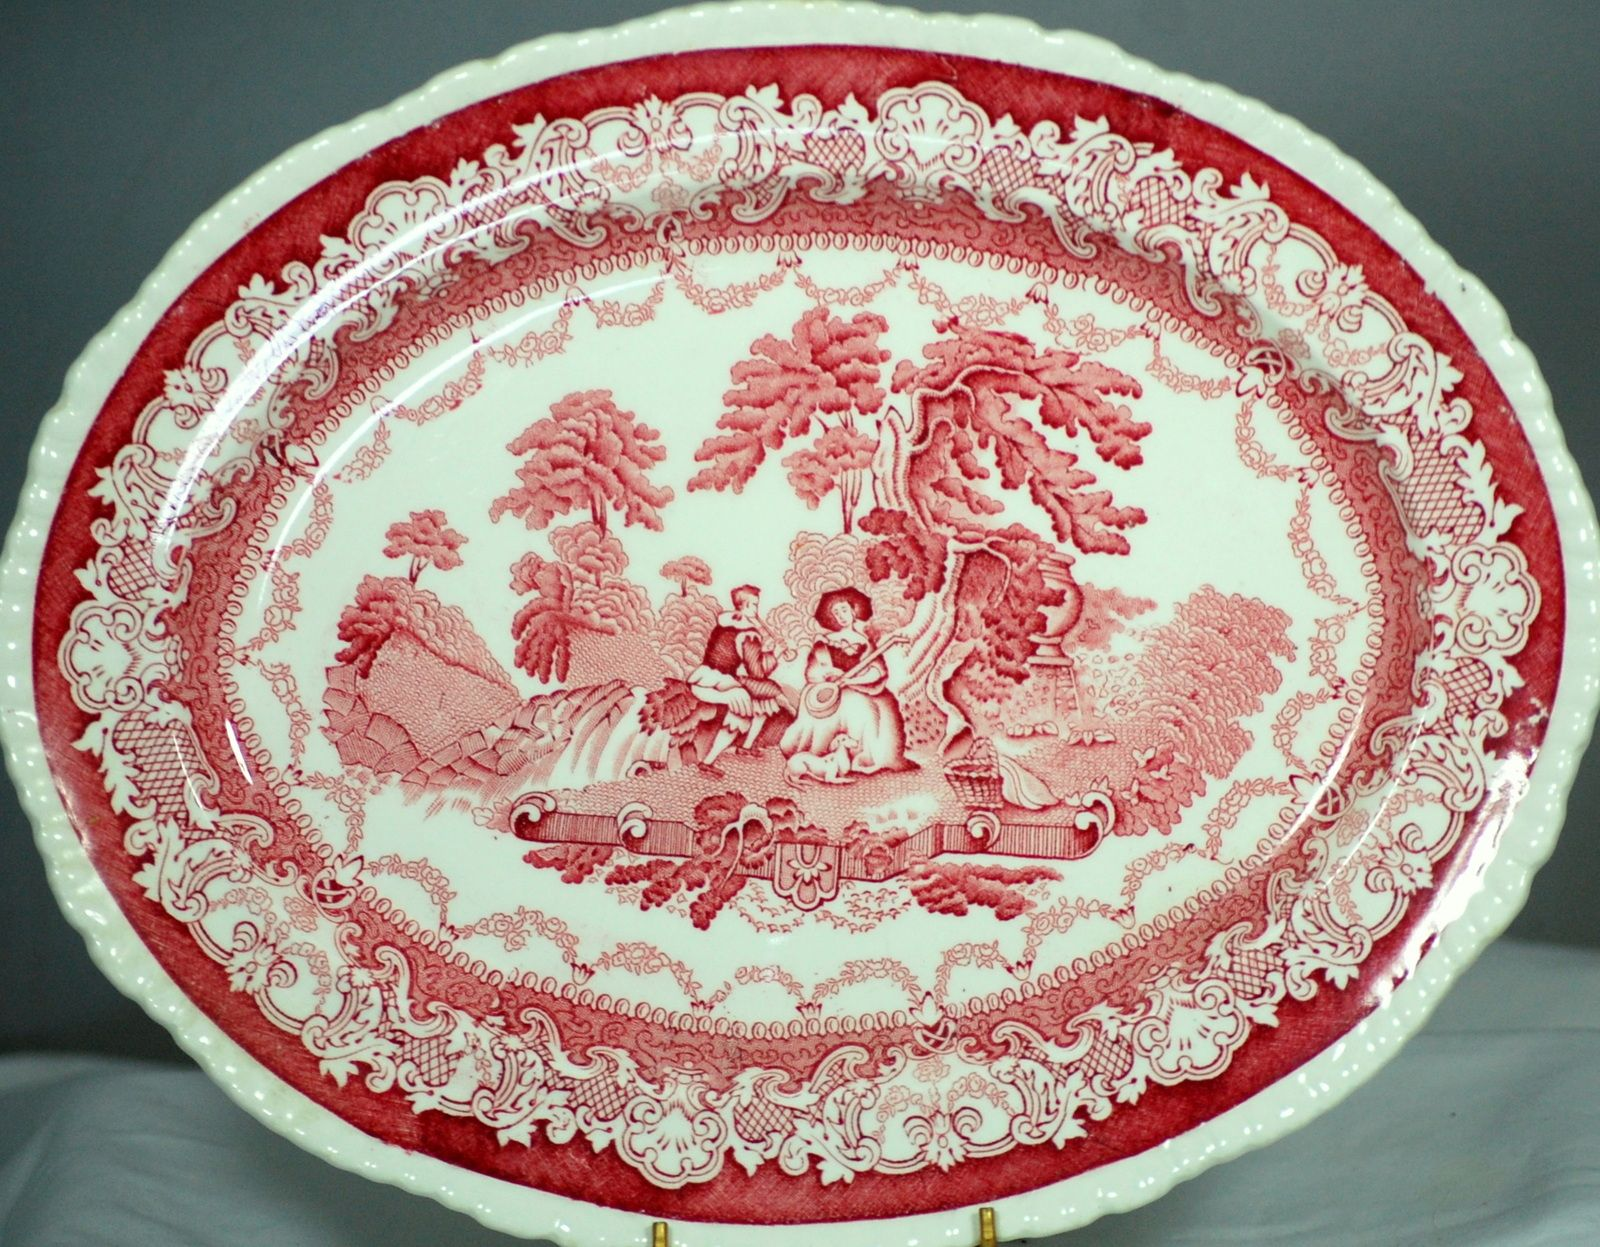 Woods Watteau Burslem Enoch 1784 Ralph 1750 12 Inch Oval Serving Platter : decorative serving plates - pezcame.com